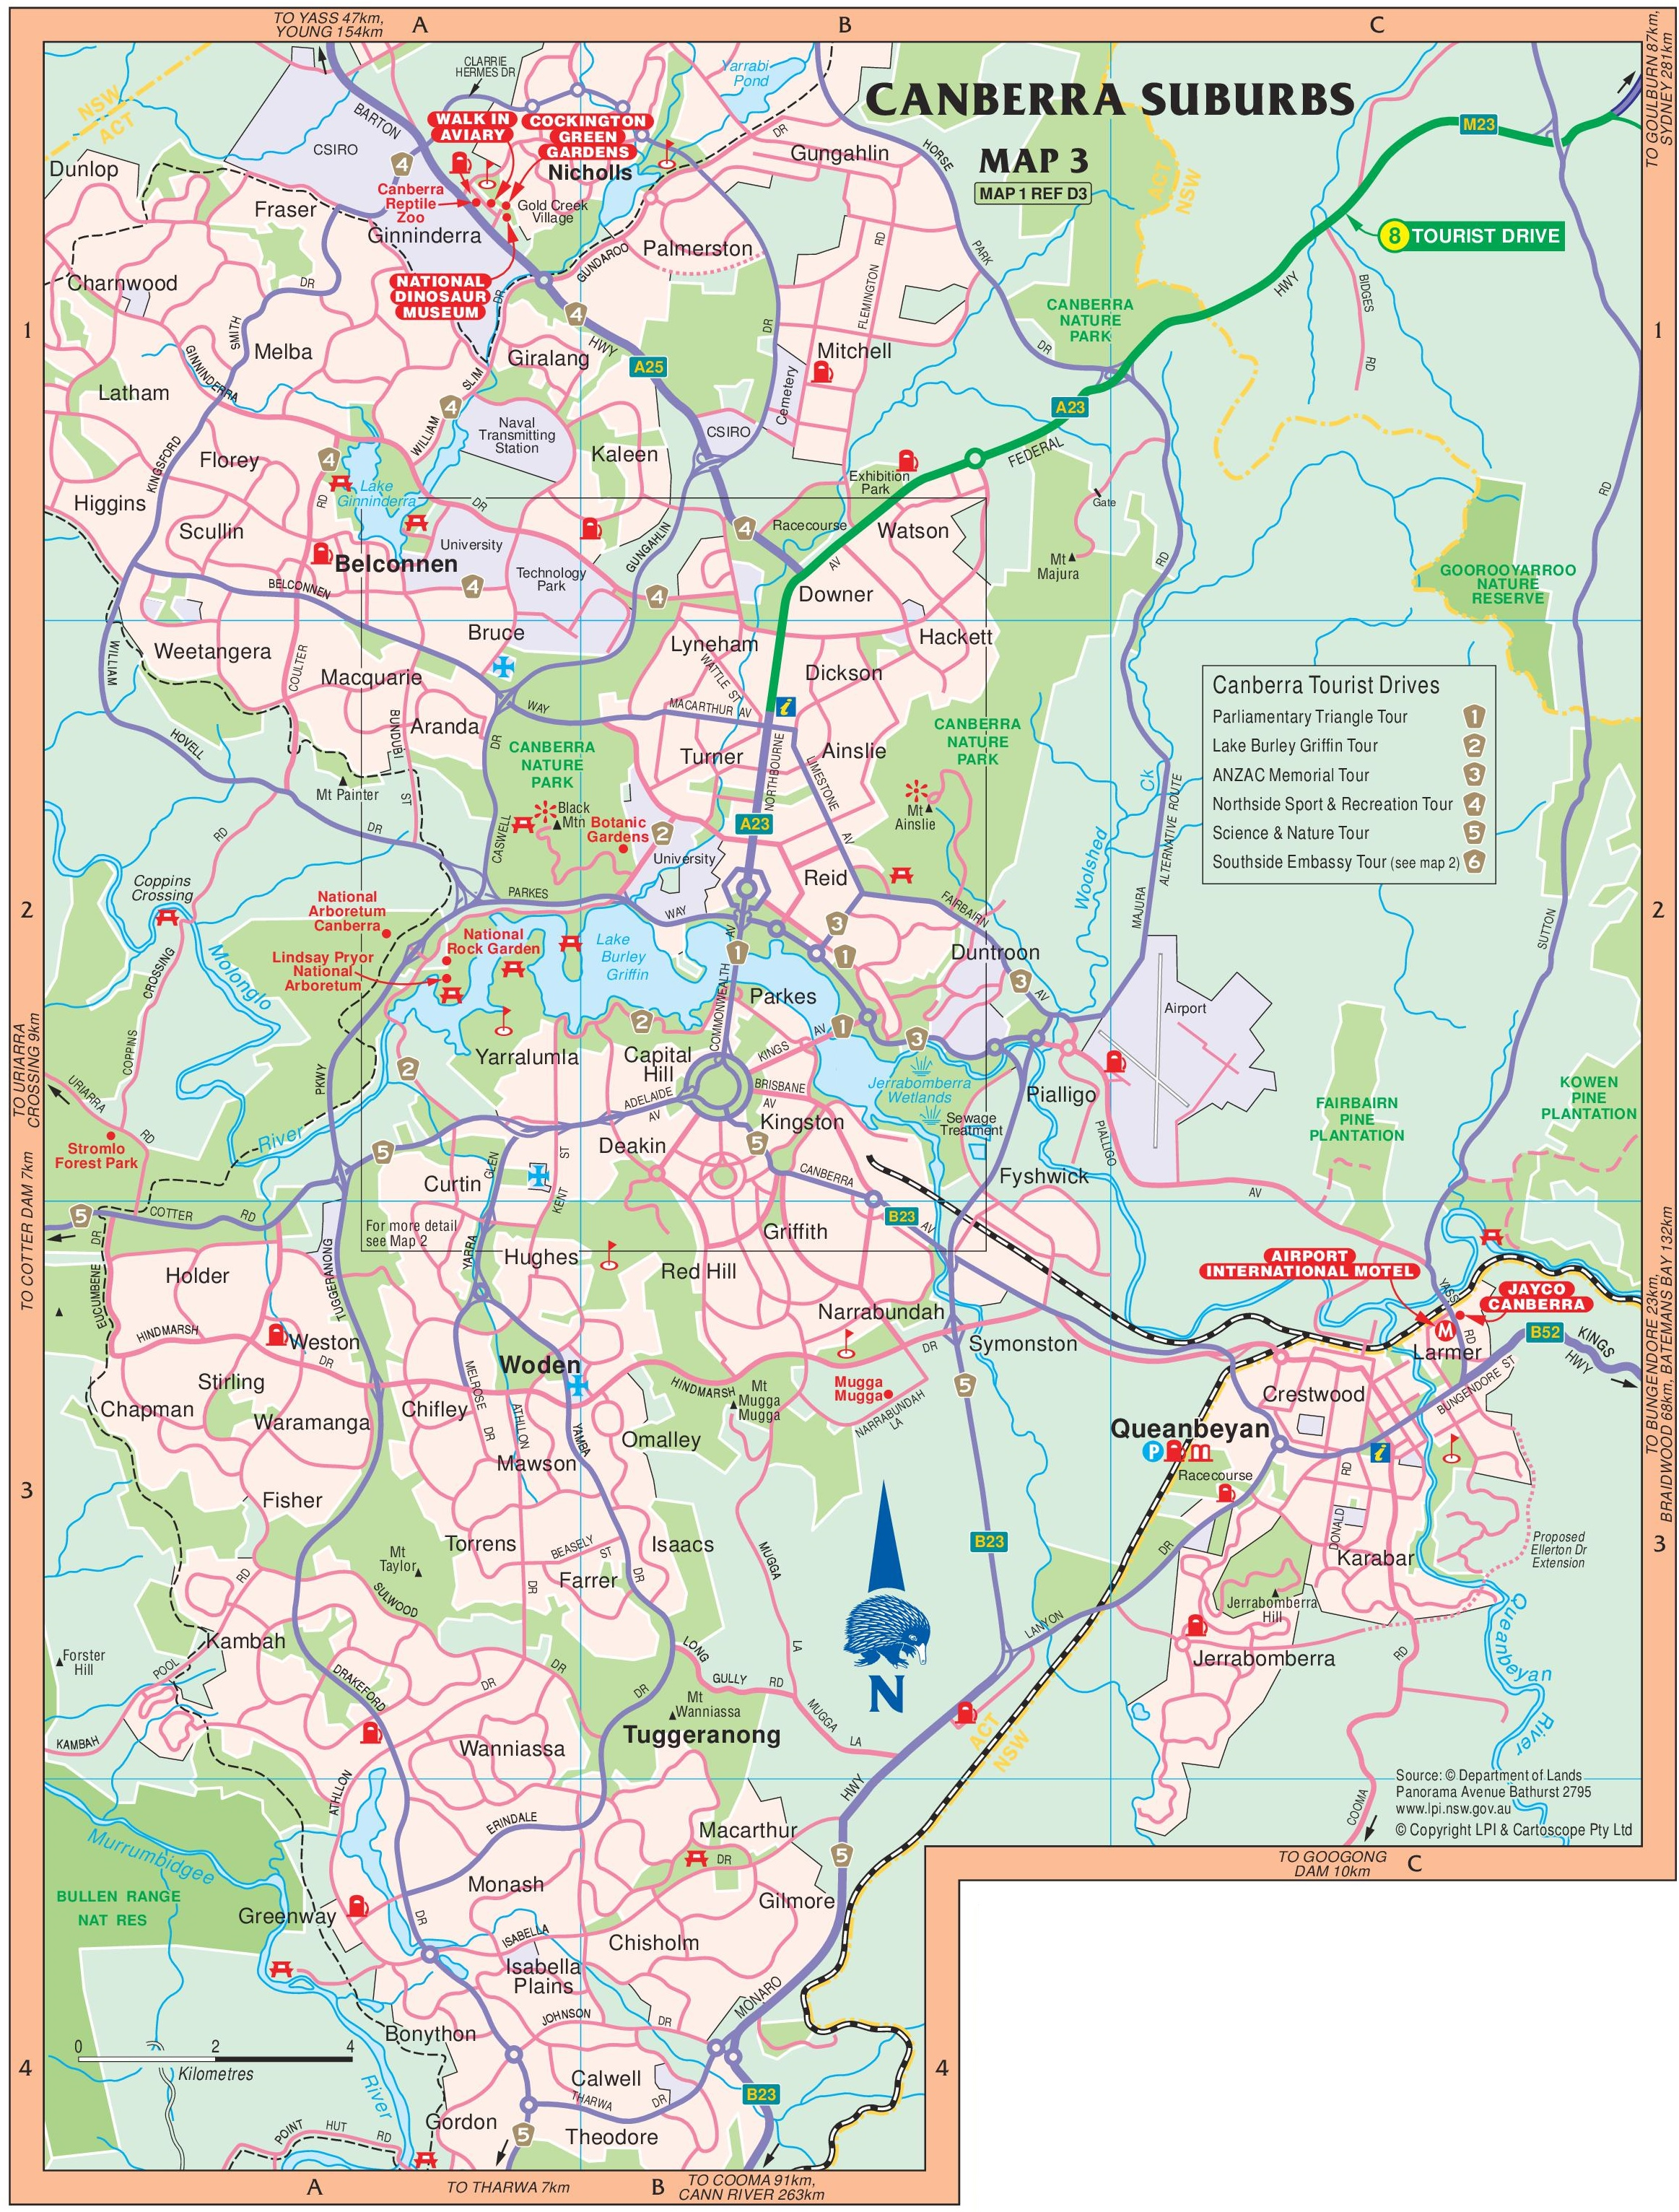 map of western new york with Map Of Surroundings Of Canberra on Brisbane Location On The Australia Map besides Us Ski Areas Poster Map also IsimangalisoWetlandParkSouthAfrica together with Manhattan Subway Map Pdf further Israeli Tycoon Teddy Sagi Digitizes Camden Market London.